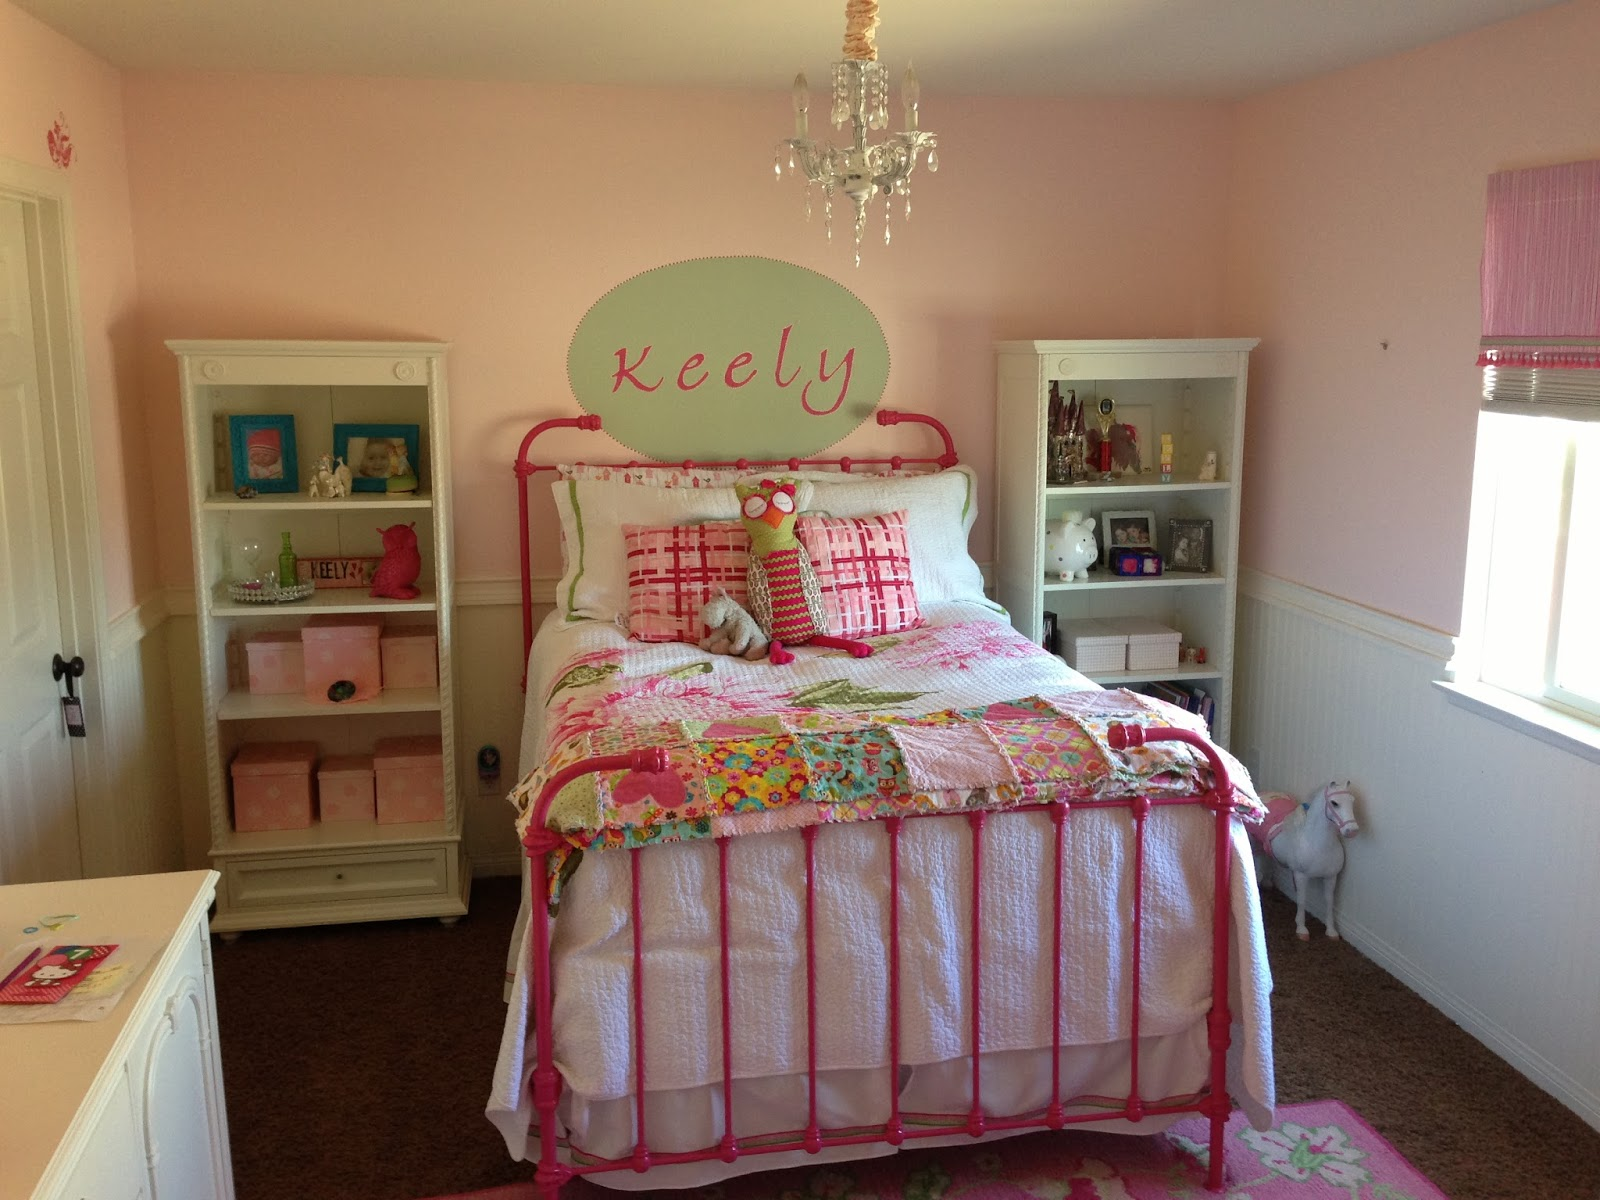 3 Little Things Keely S Big Girl Room Make Over Part 2